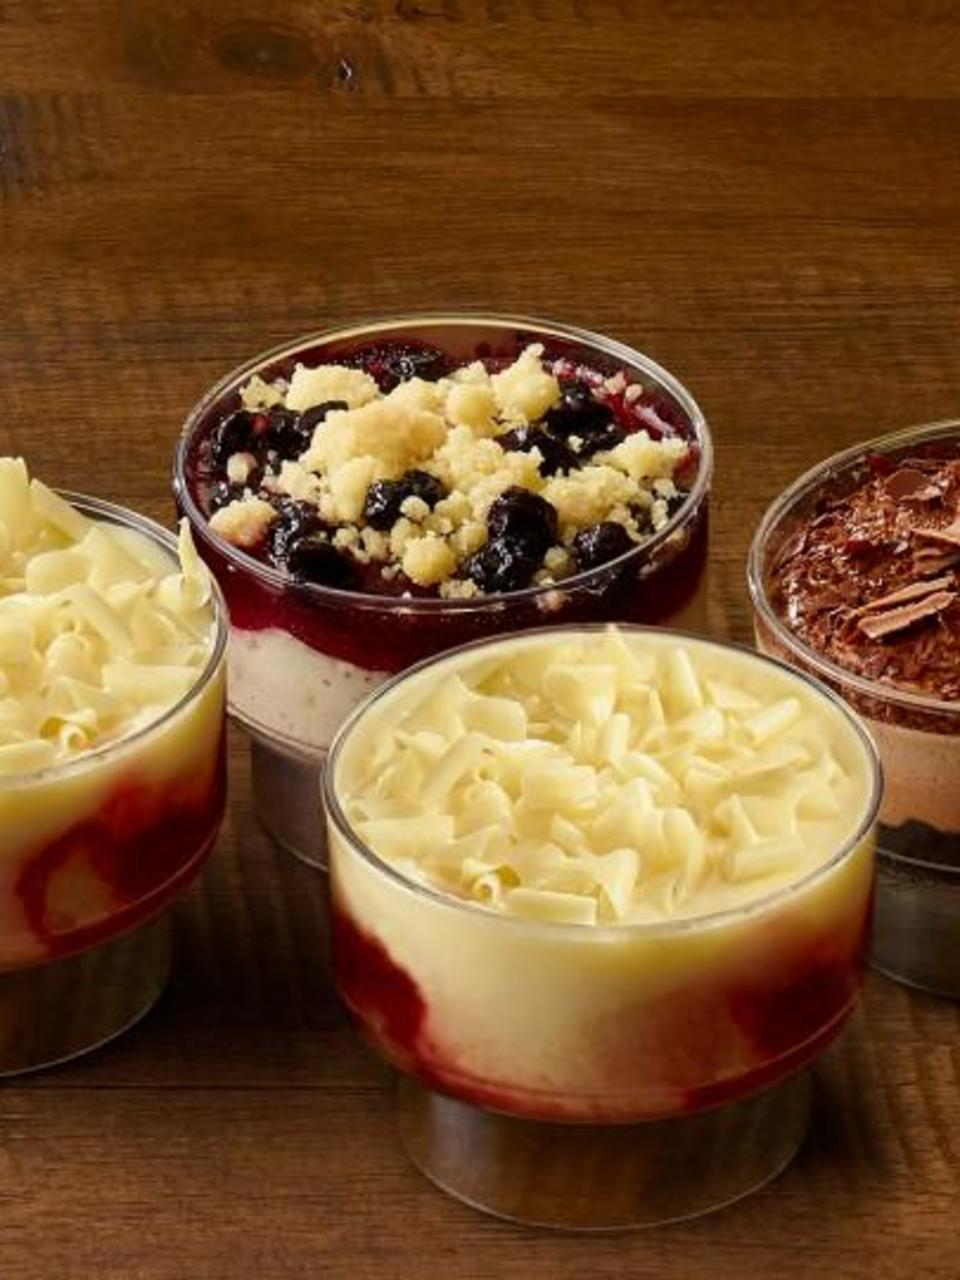 Olive Garden Gifting Leap Day Babies With 4 Free Desserts To Make